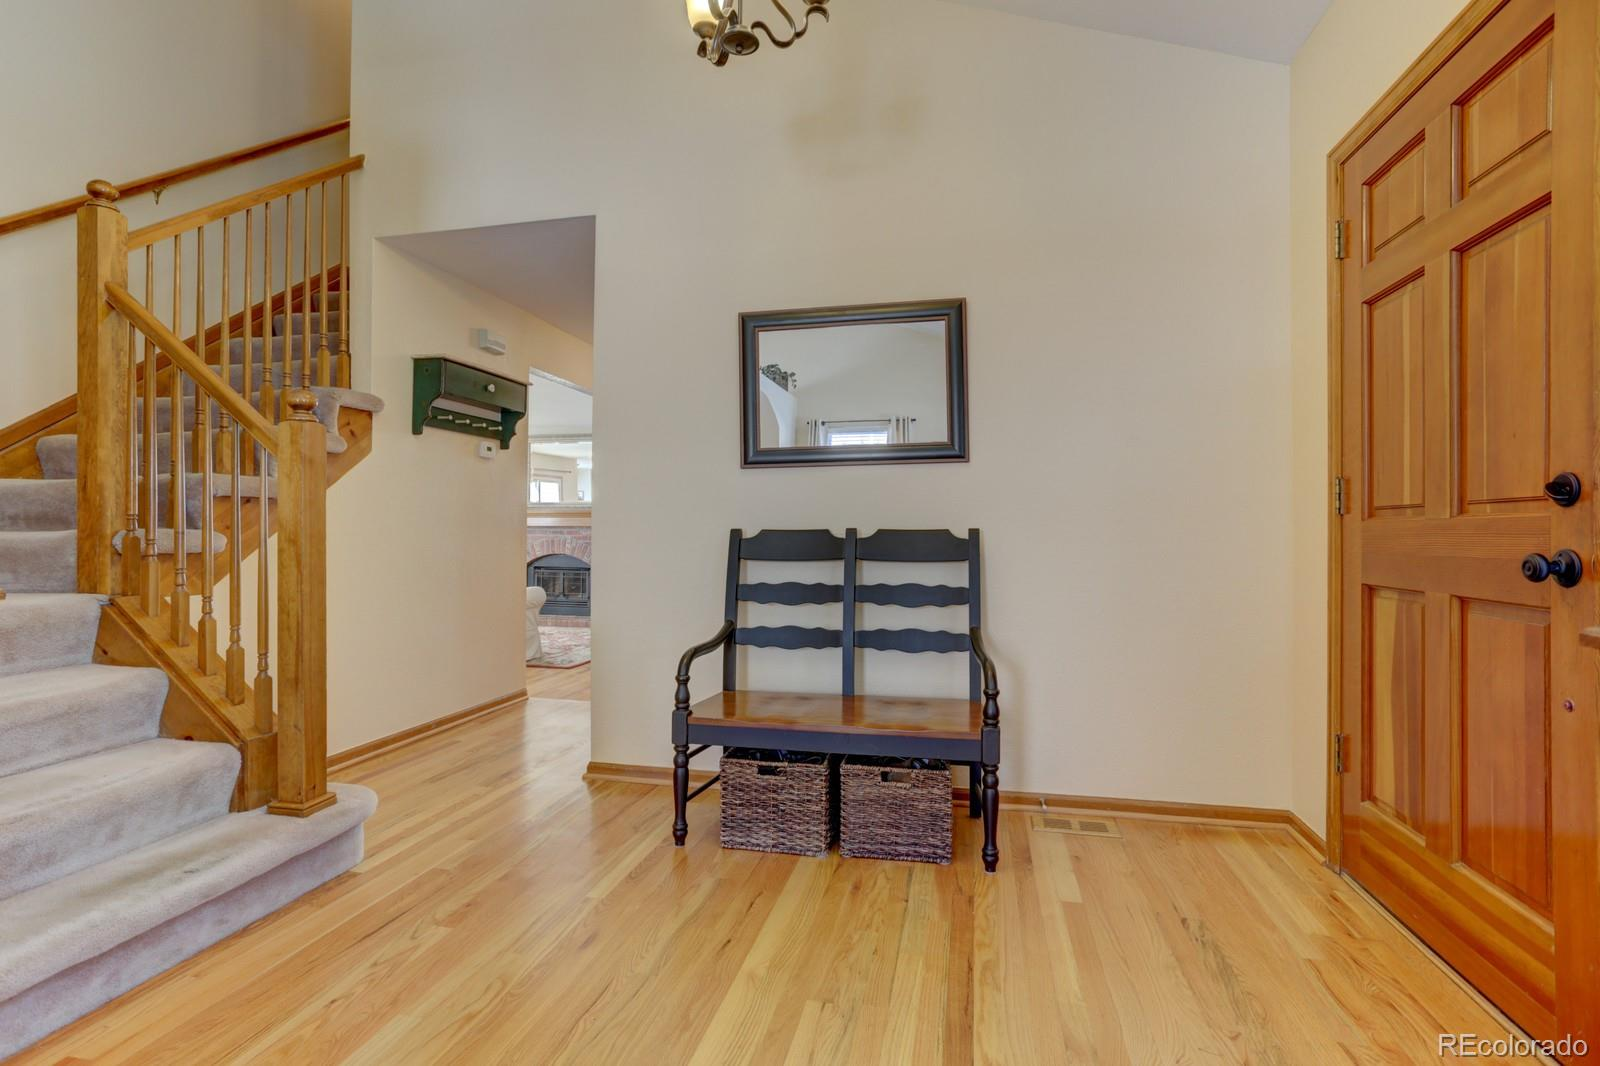 MLS# 5985159 - 4 - 9991 Spring Hill Place, Highlands Ranch, CO 80129